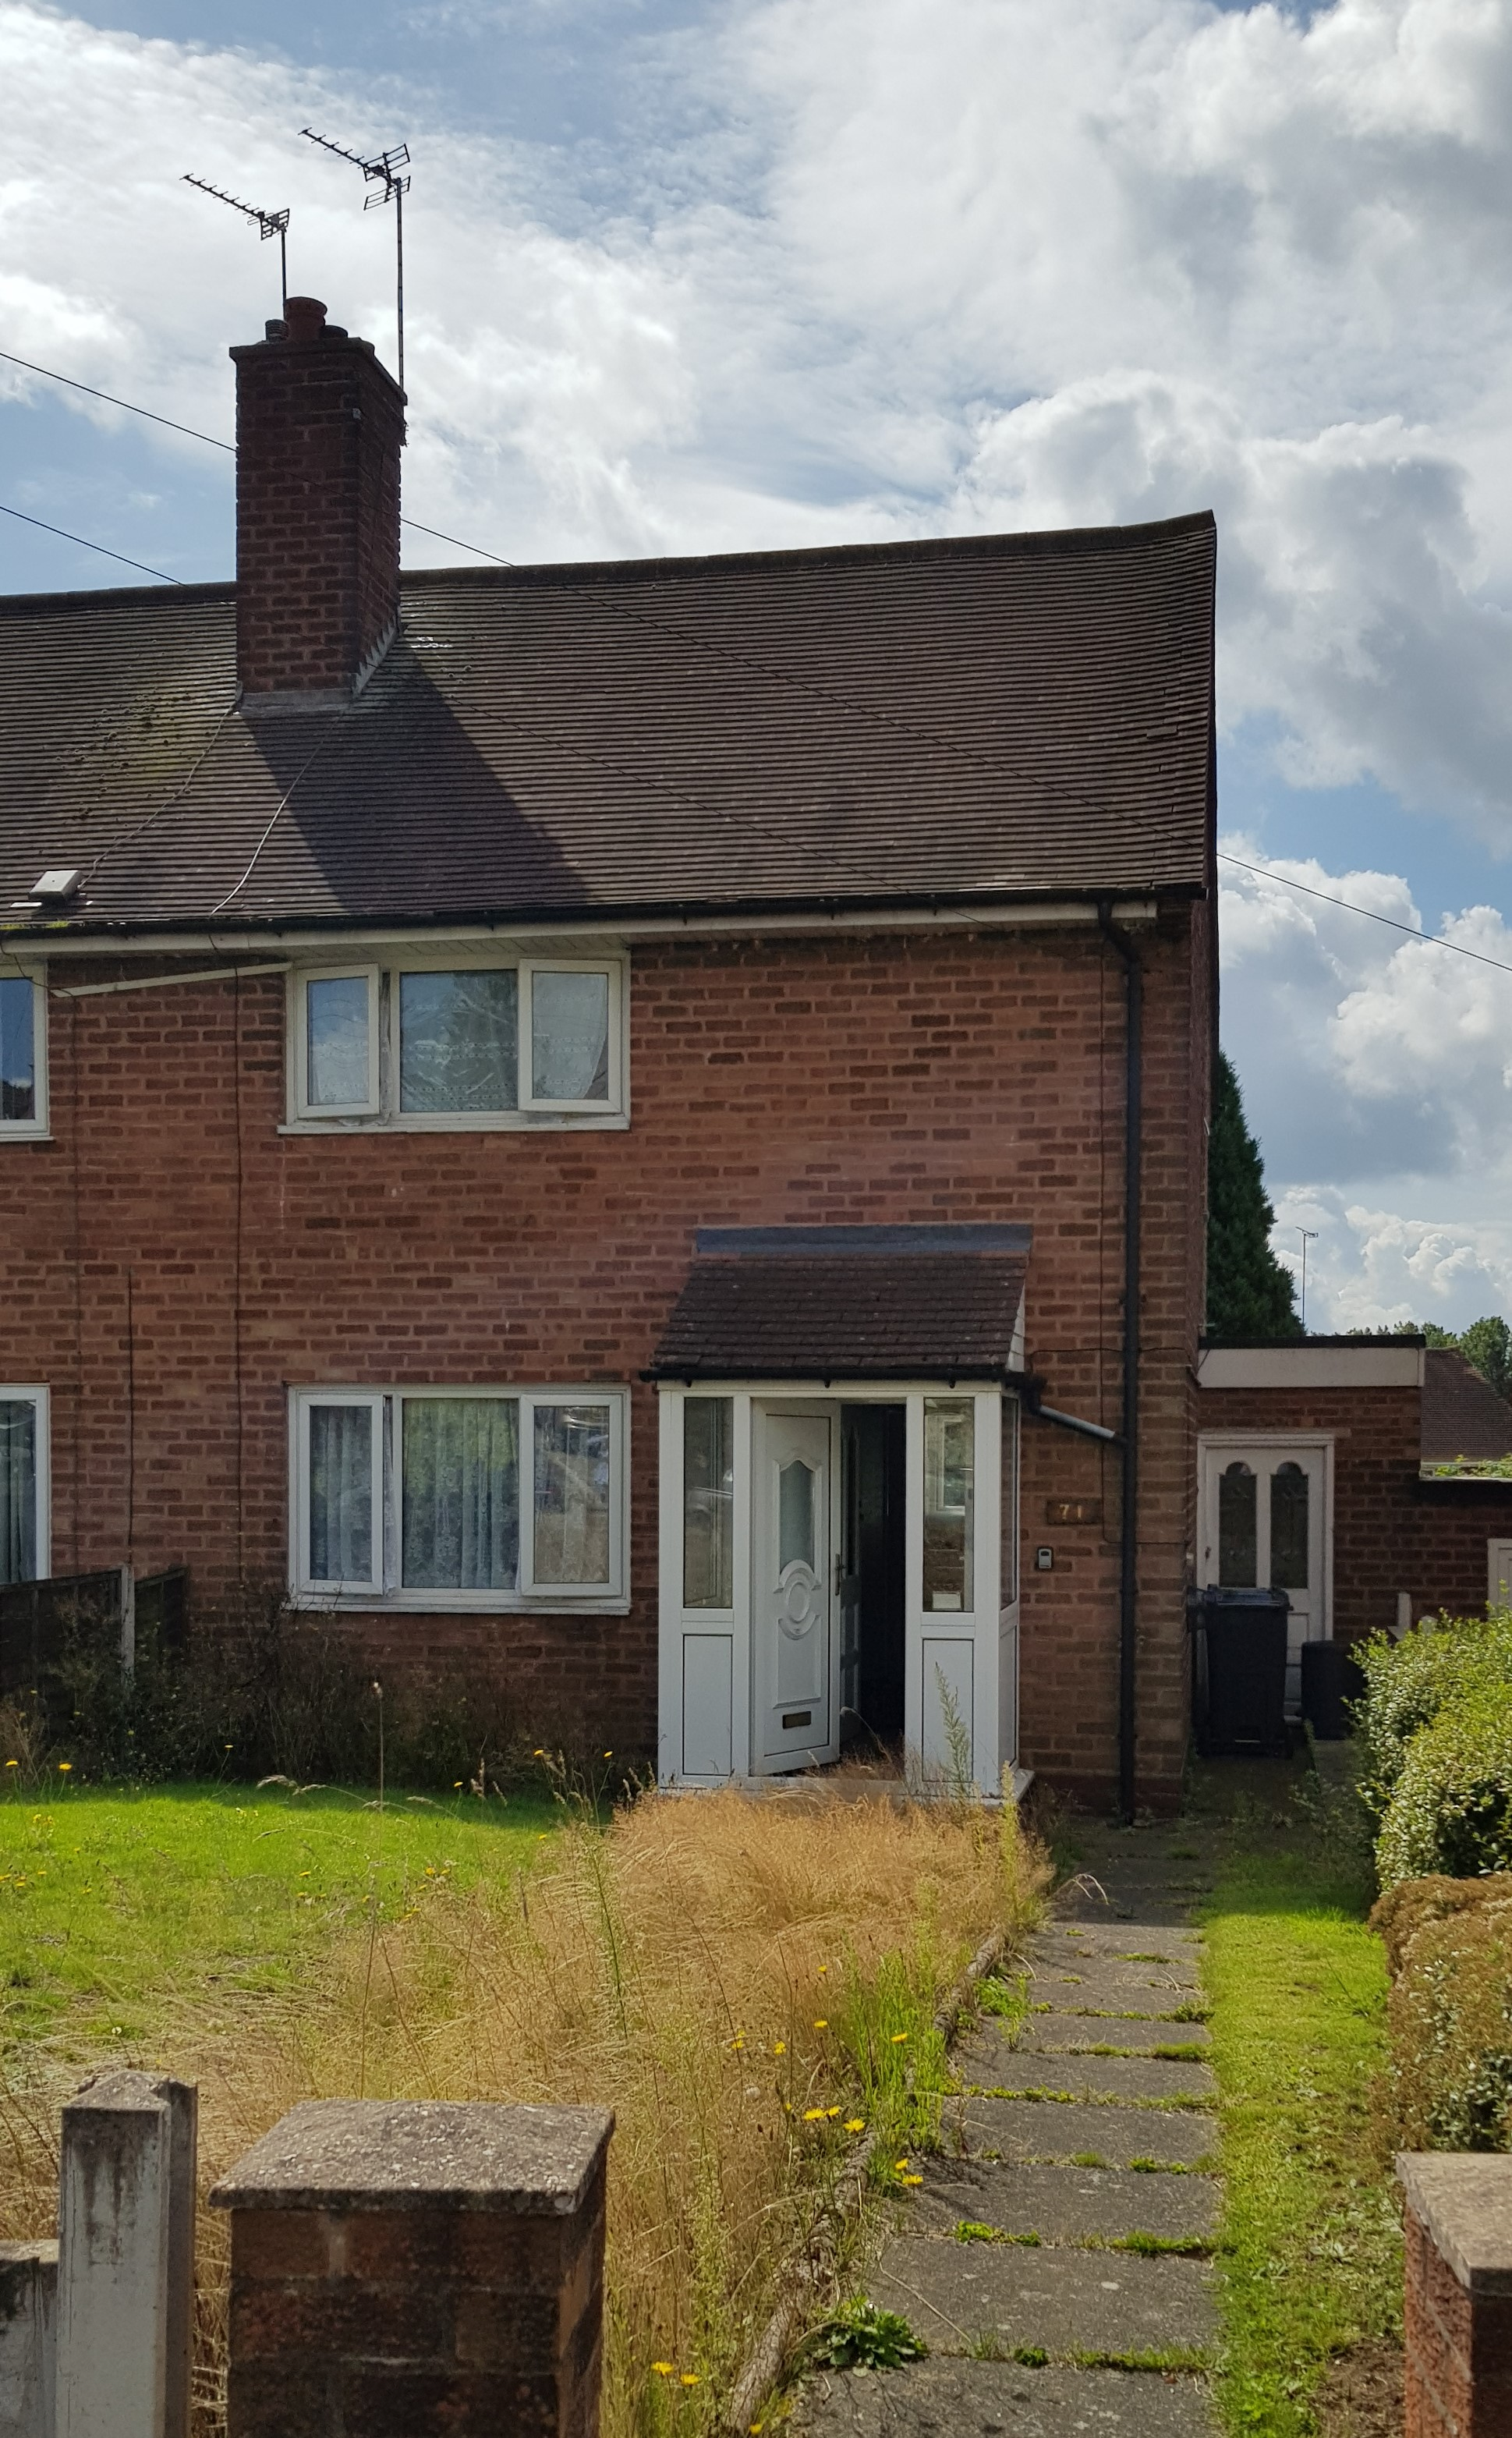 Lot 1 - 71 Booths Lane, Great Barr, Birmingham B42 2RG. A freehold two bedroom semi detached property with